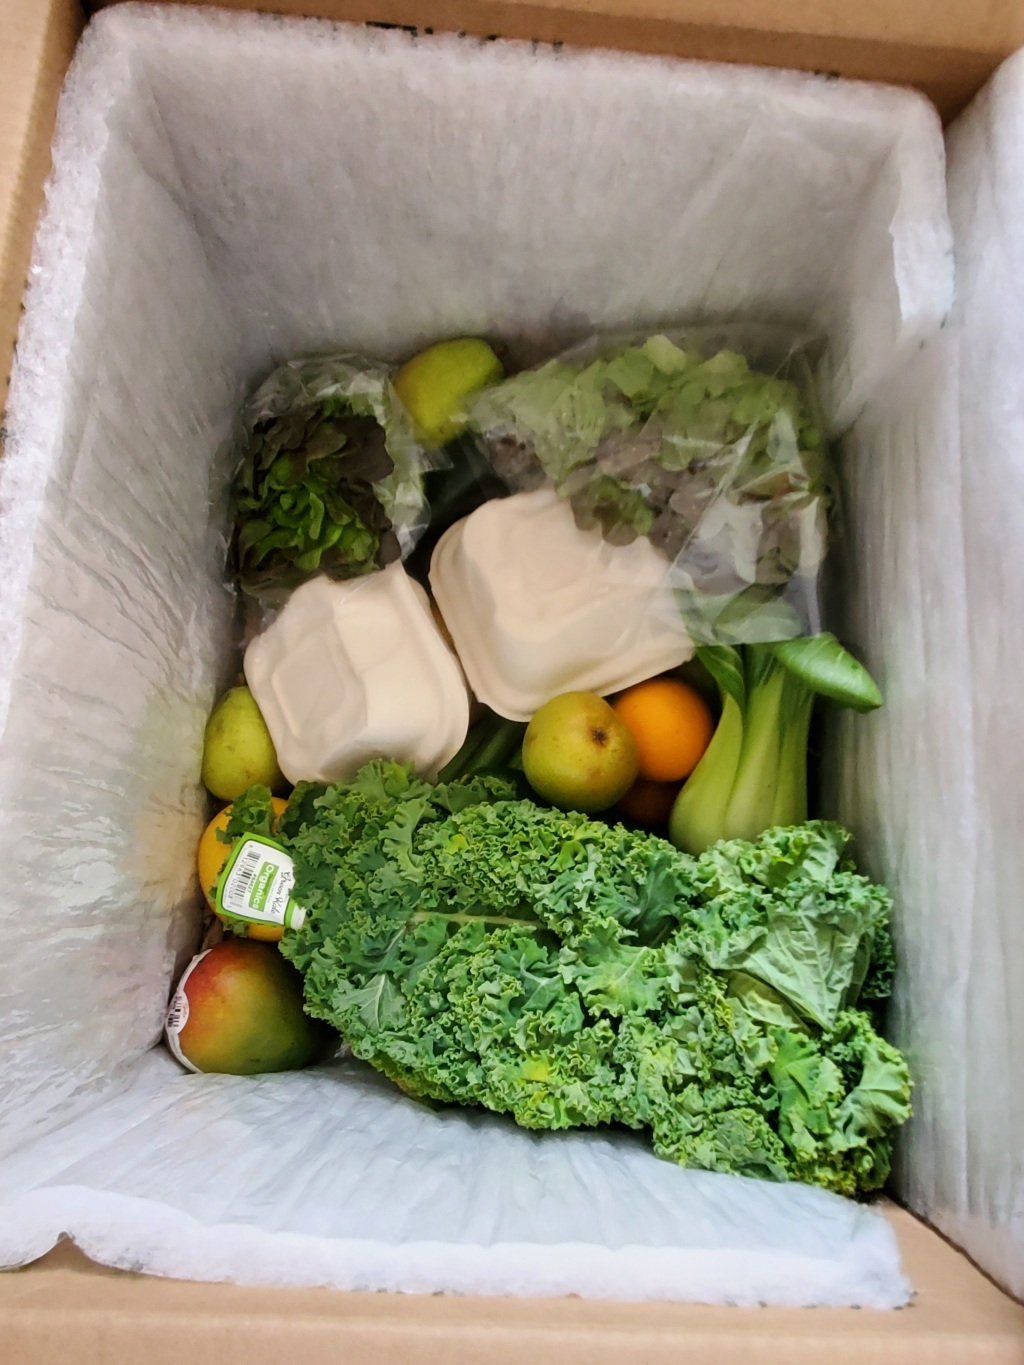 Variety of fruits and veg in the box